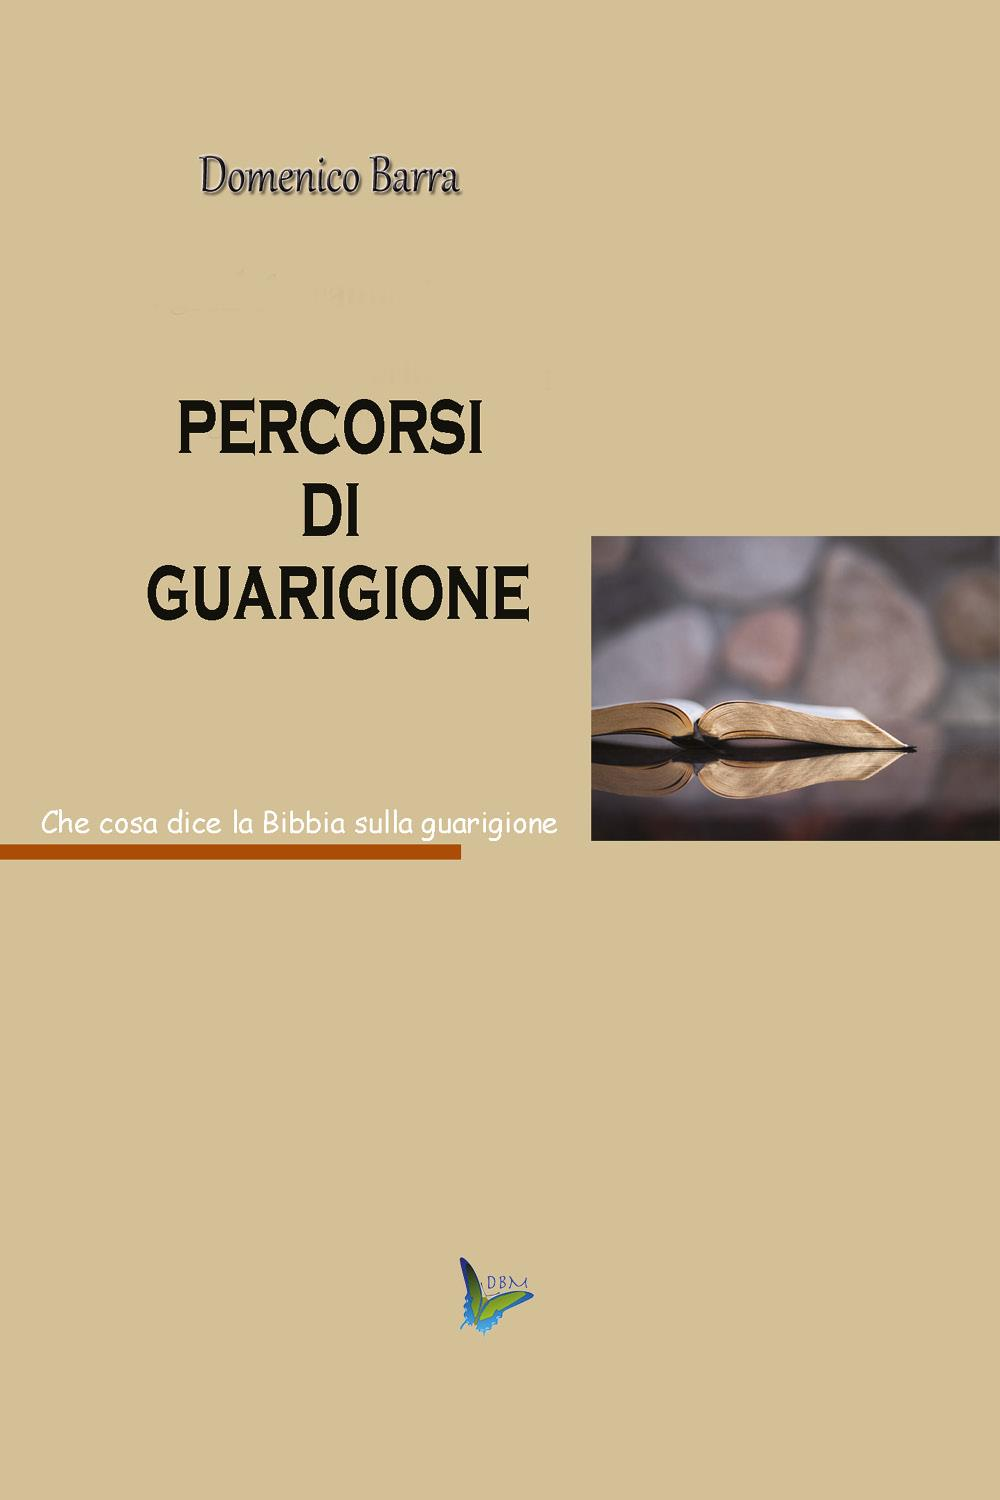 Percorsi di guarigione